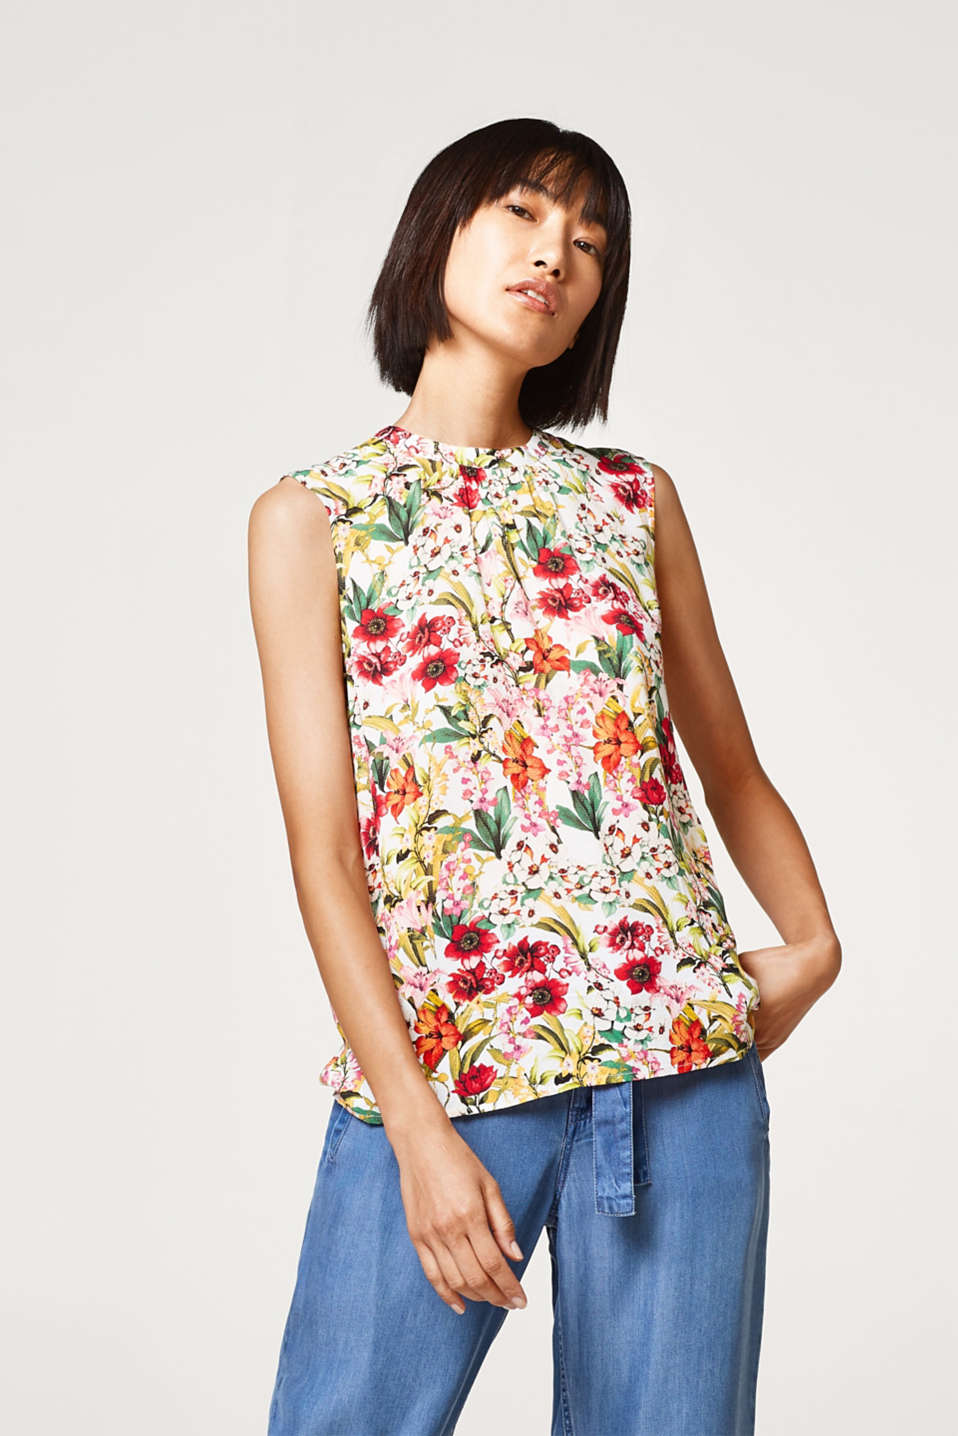 Esprit - Delicate blouse top with a flower print